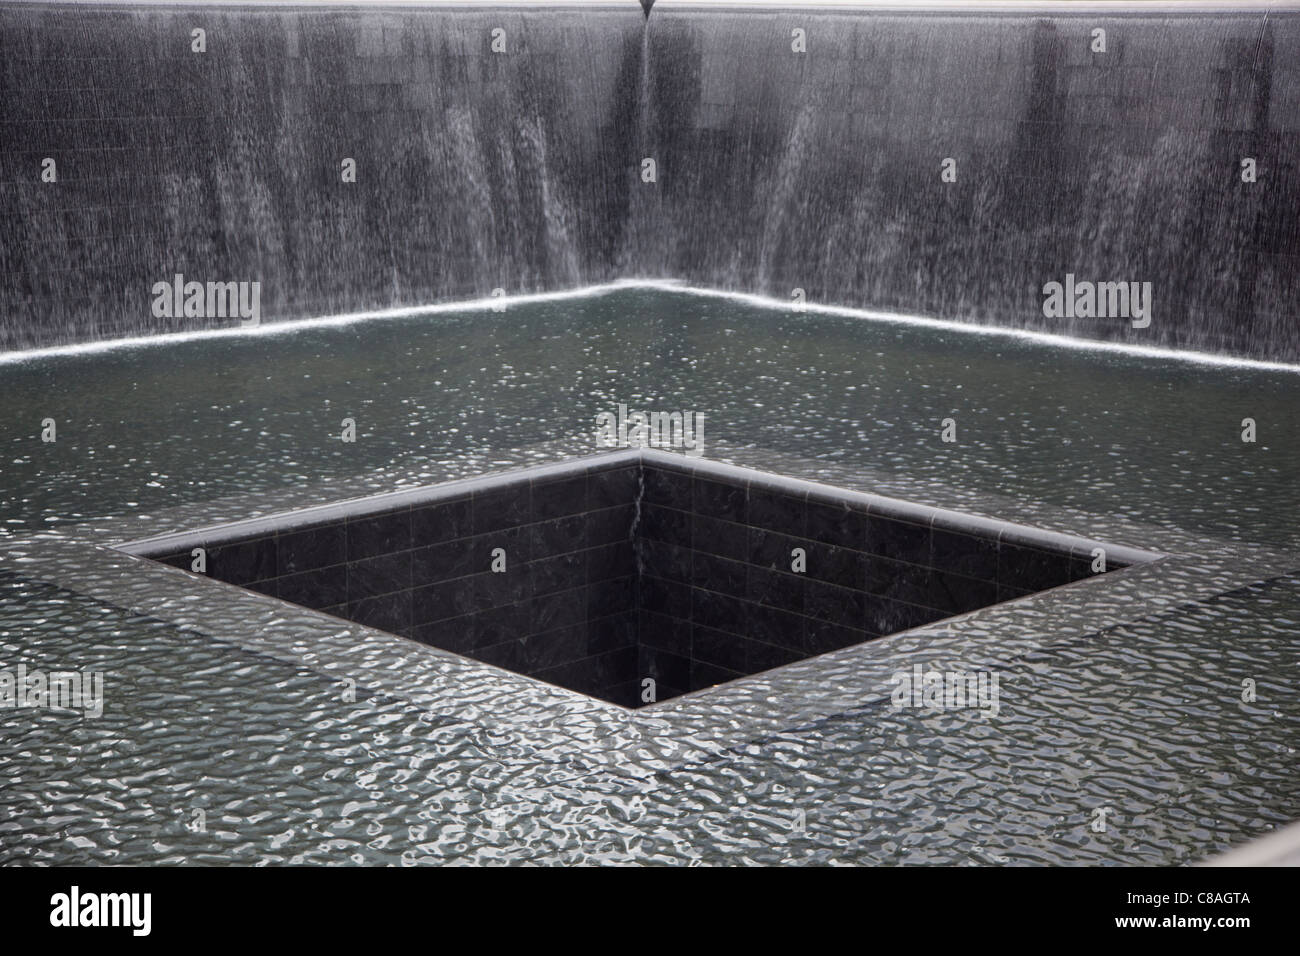 Memorial pool at the 9/11 Memorial at the World Trade Center. - Stock Image